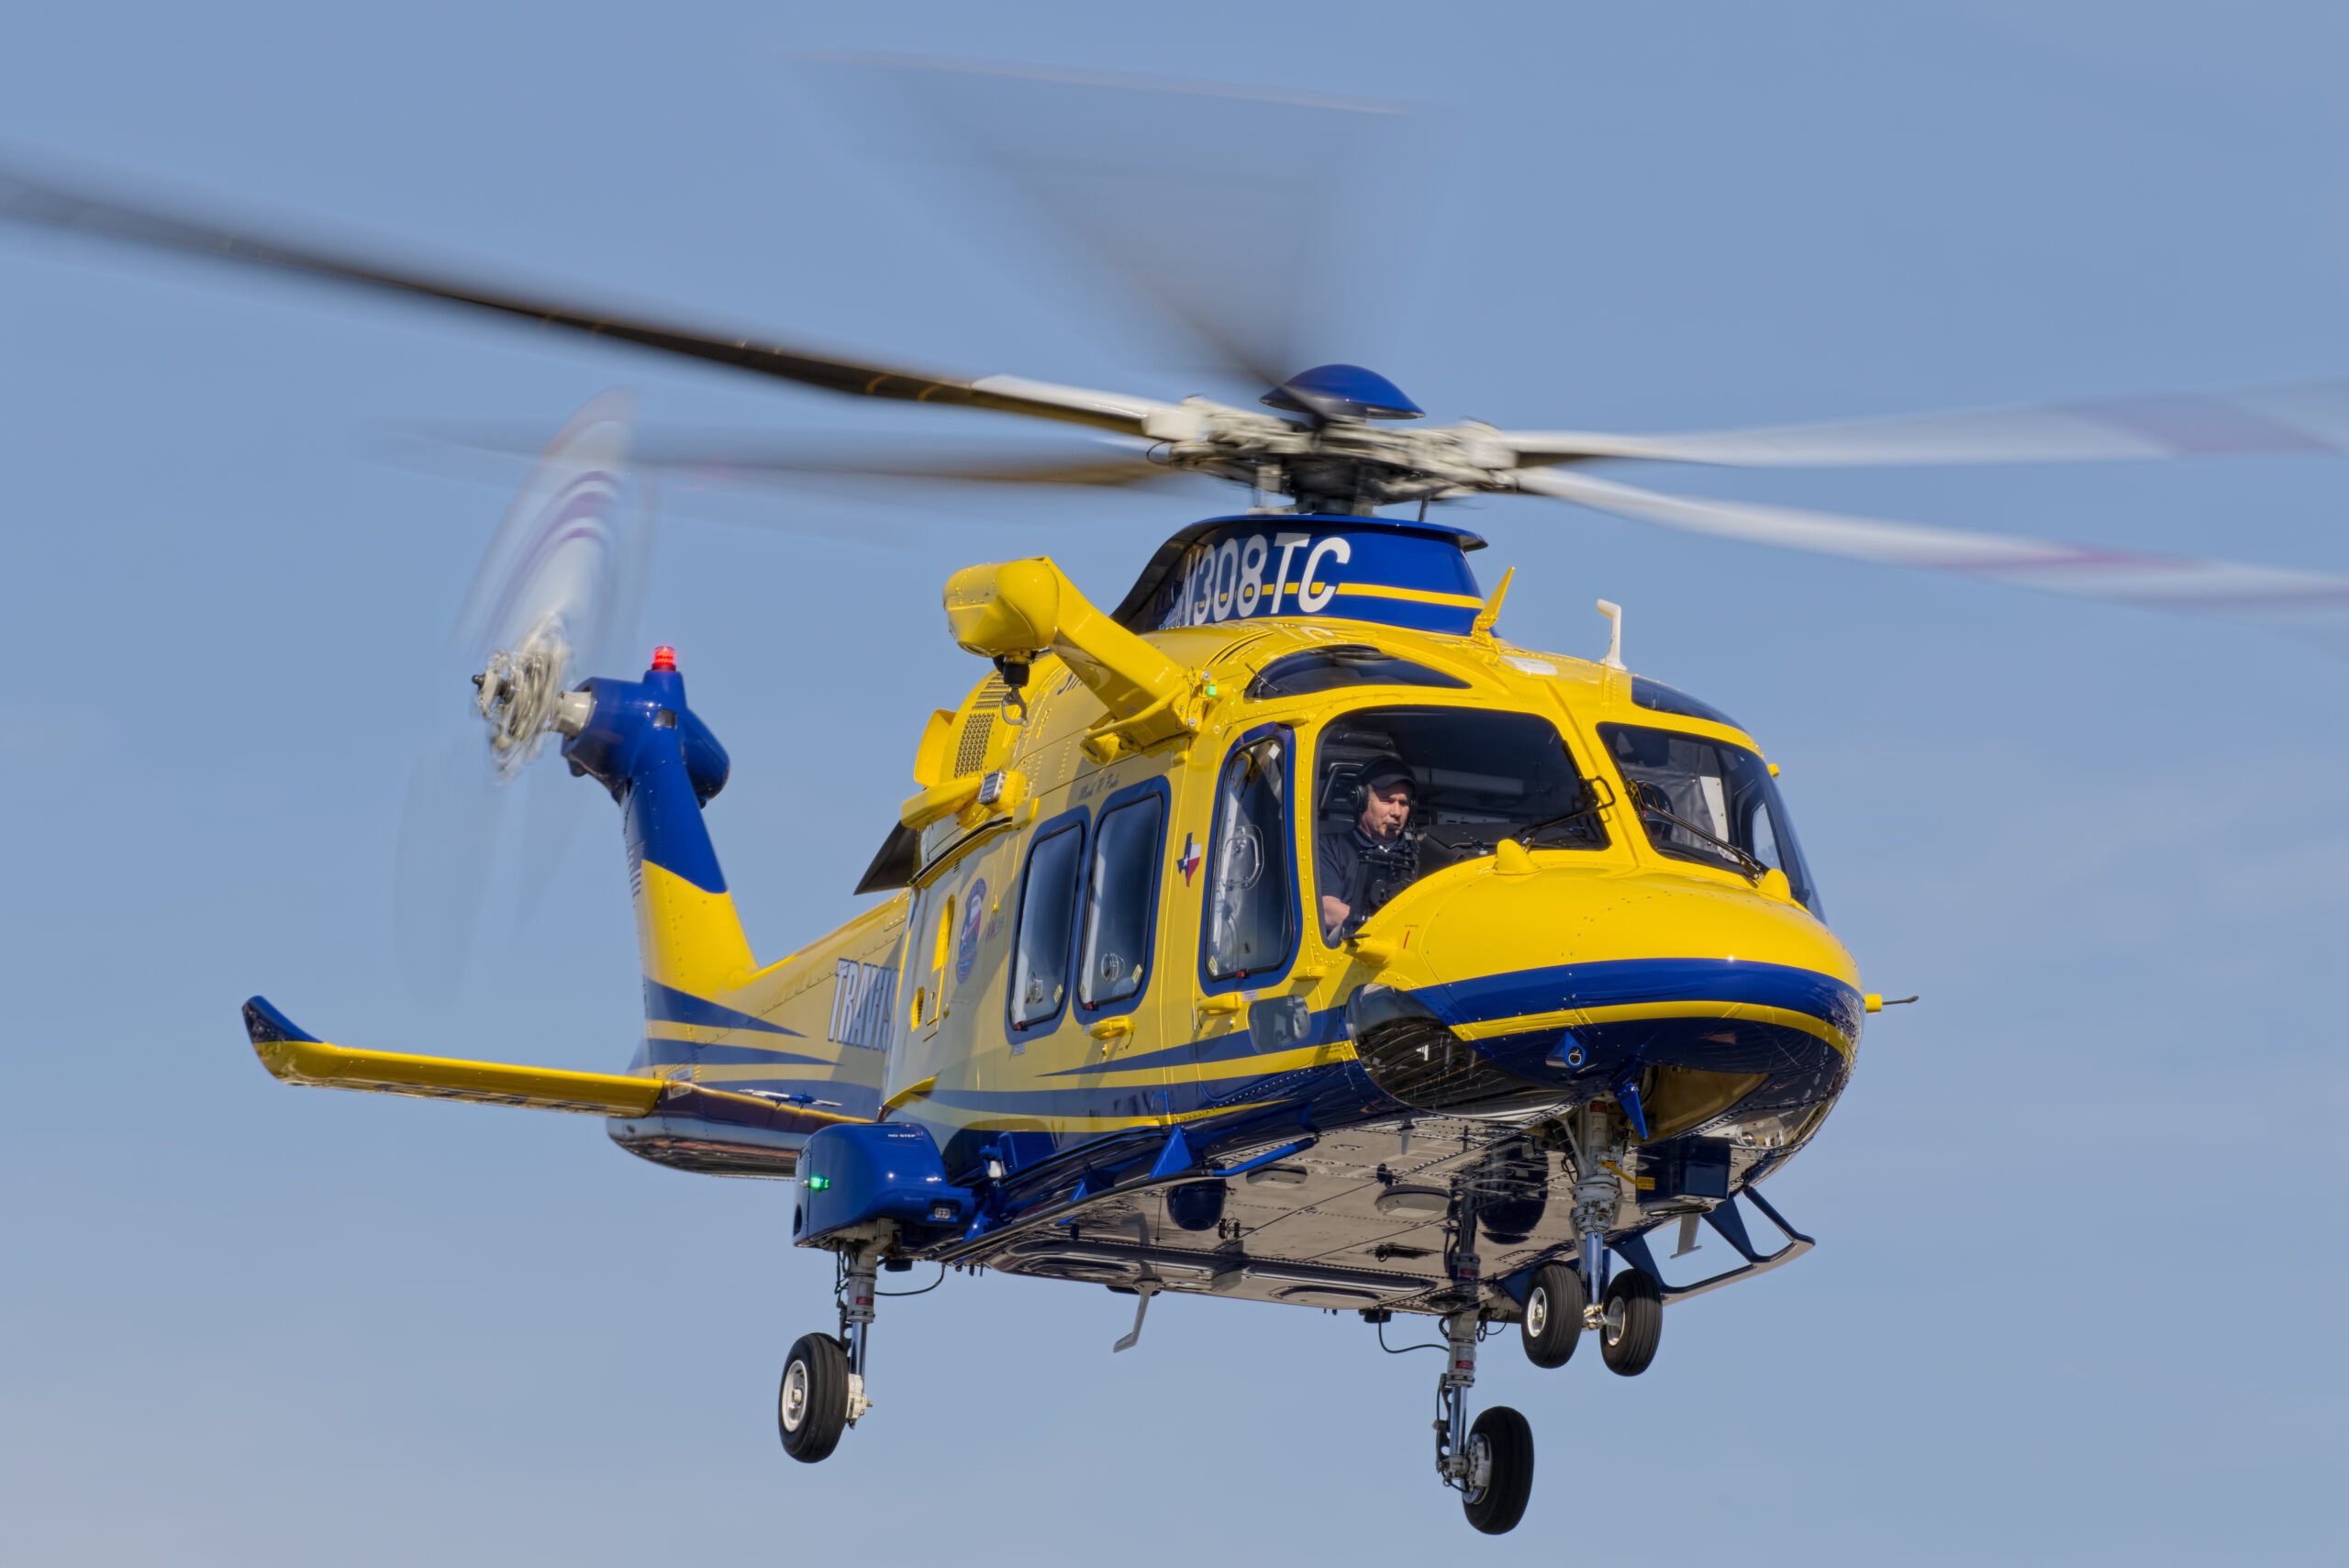 Travis County (Texas) AW169 formed part of the Leonardo Helicopters booth at Heli-Expo 2020. Damon Duran Photo.